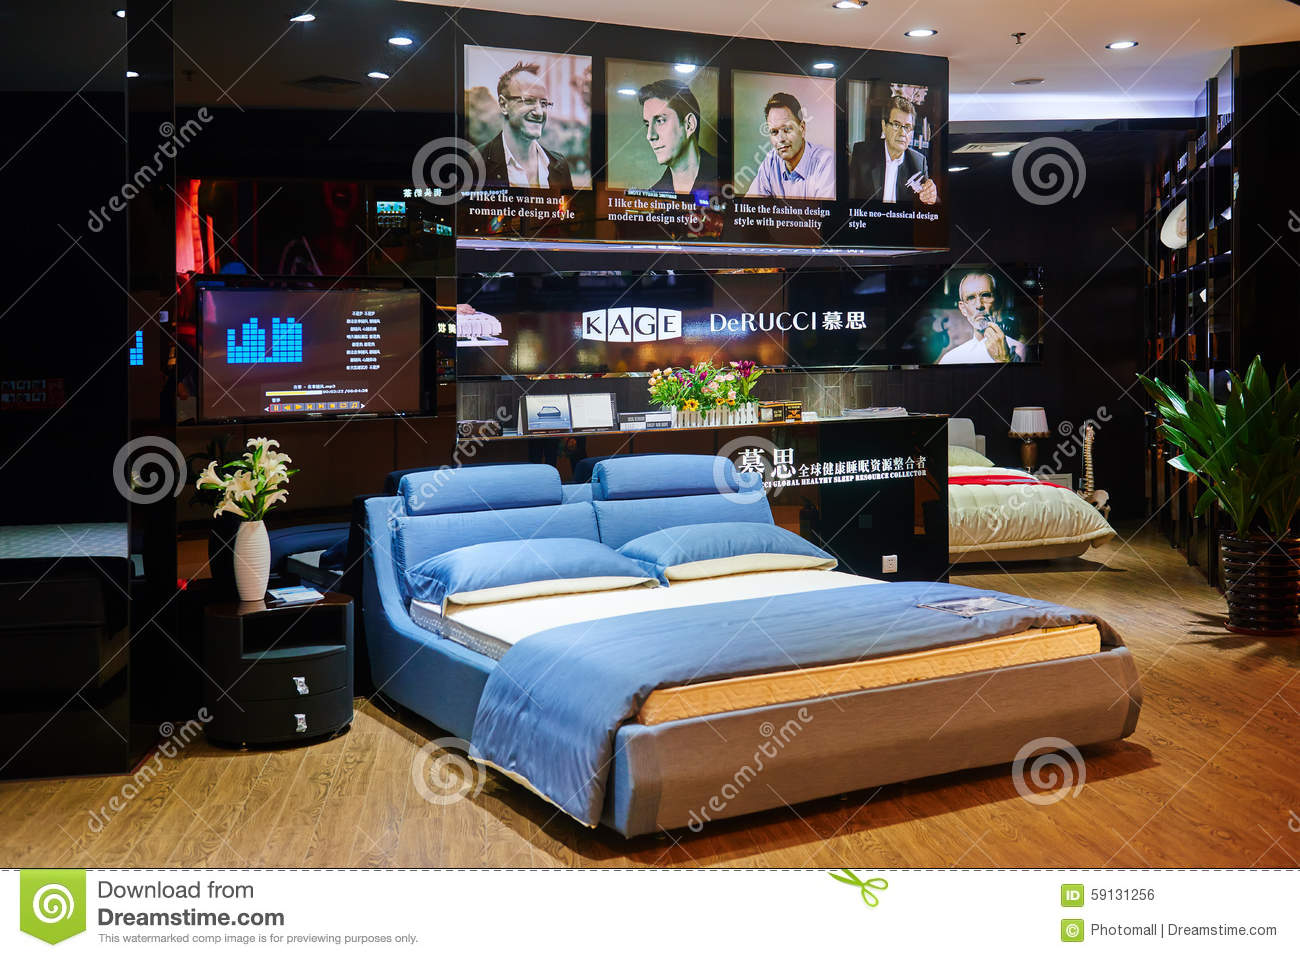 Bed mattress shop trendy bedroom editorial photo image 59131256 Home furniture outlet cerritos